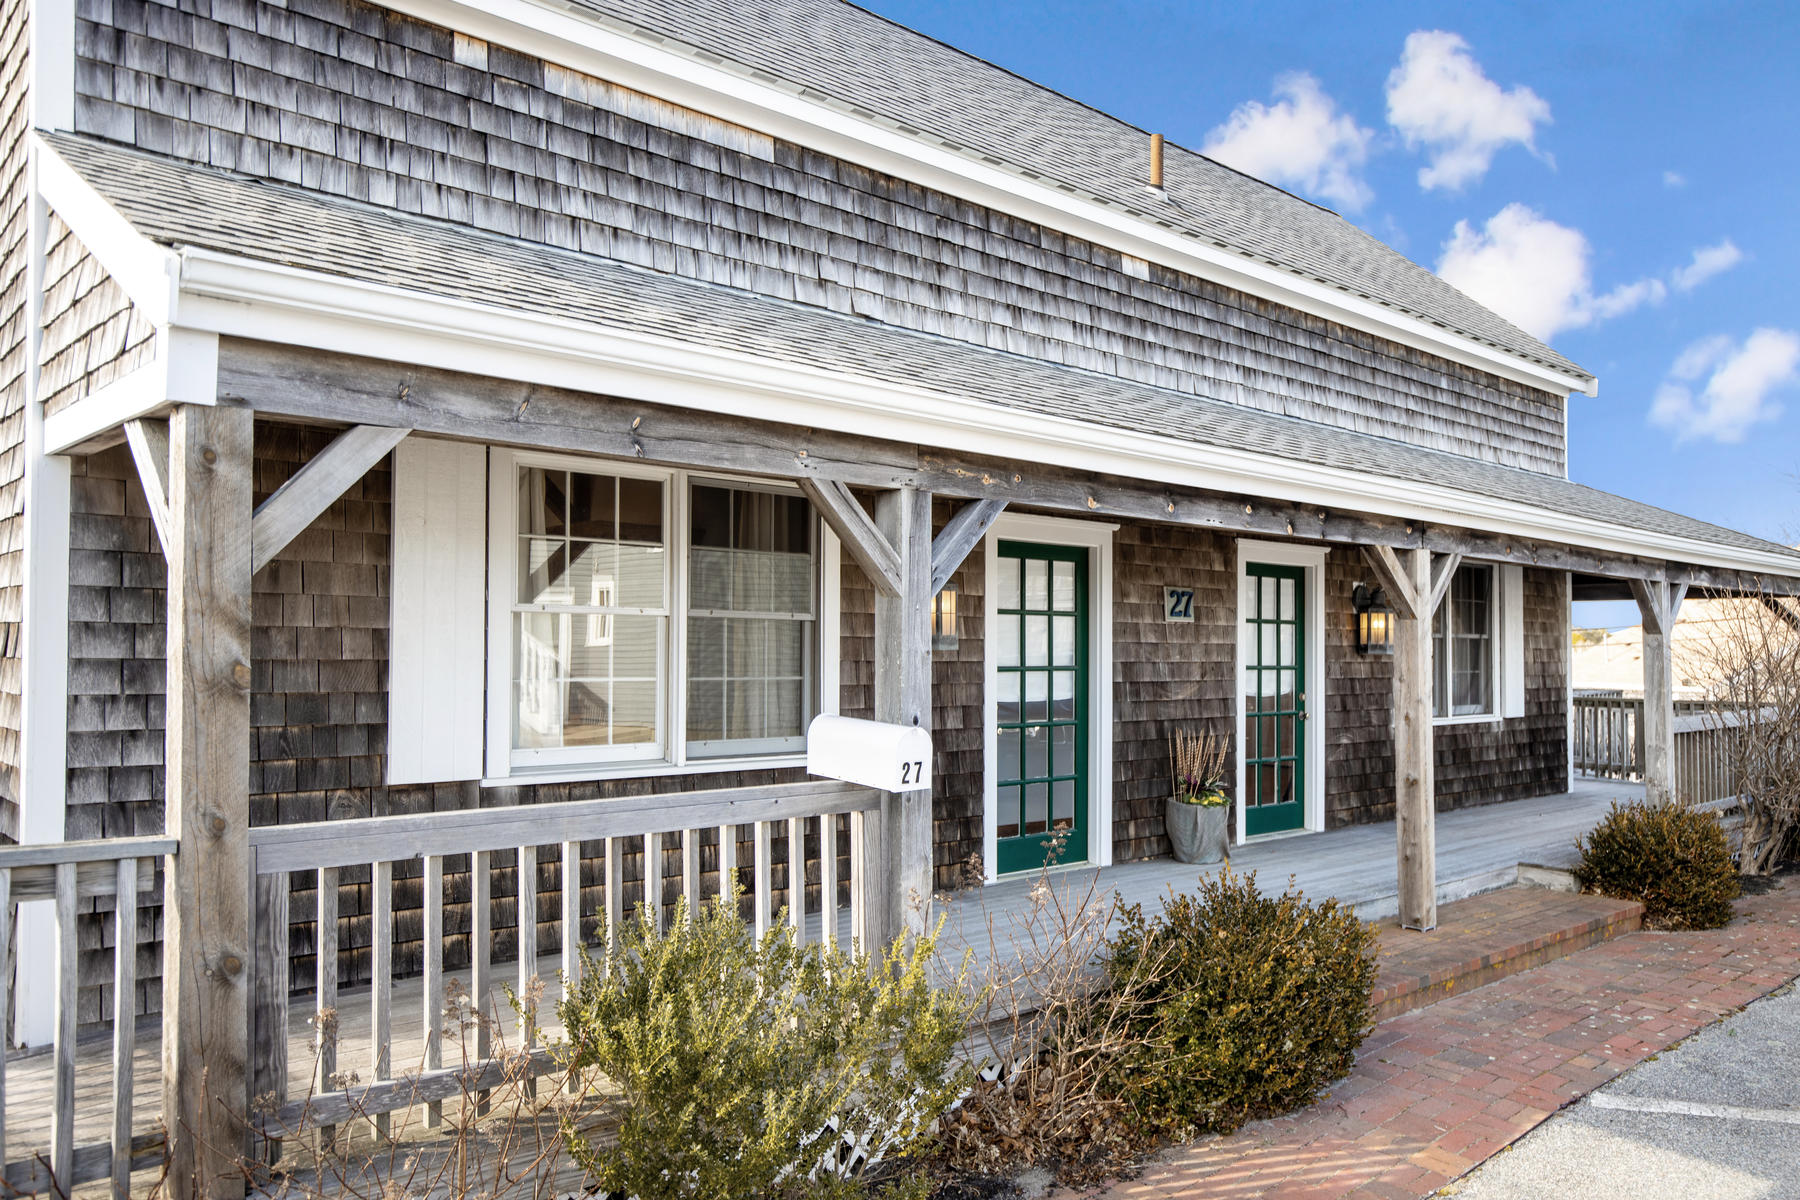 27 Post Office Lane, Chatham MA, 02633 details